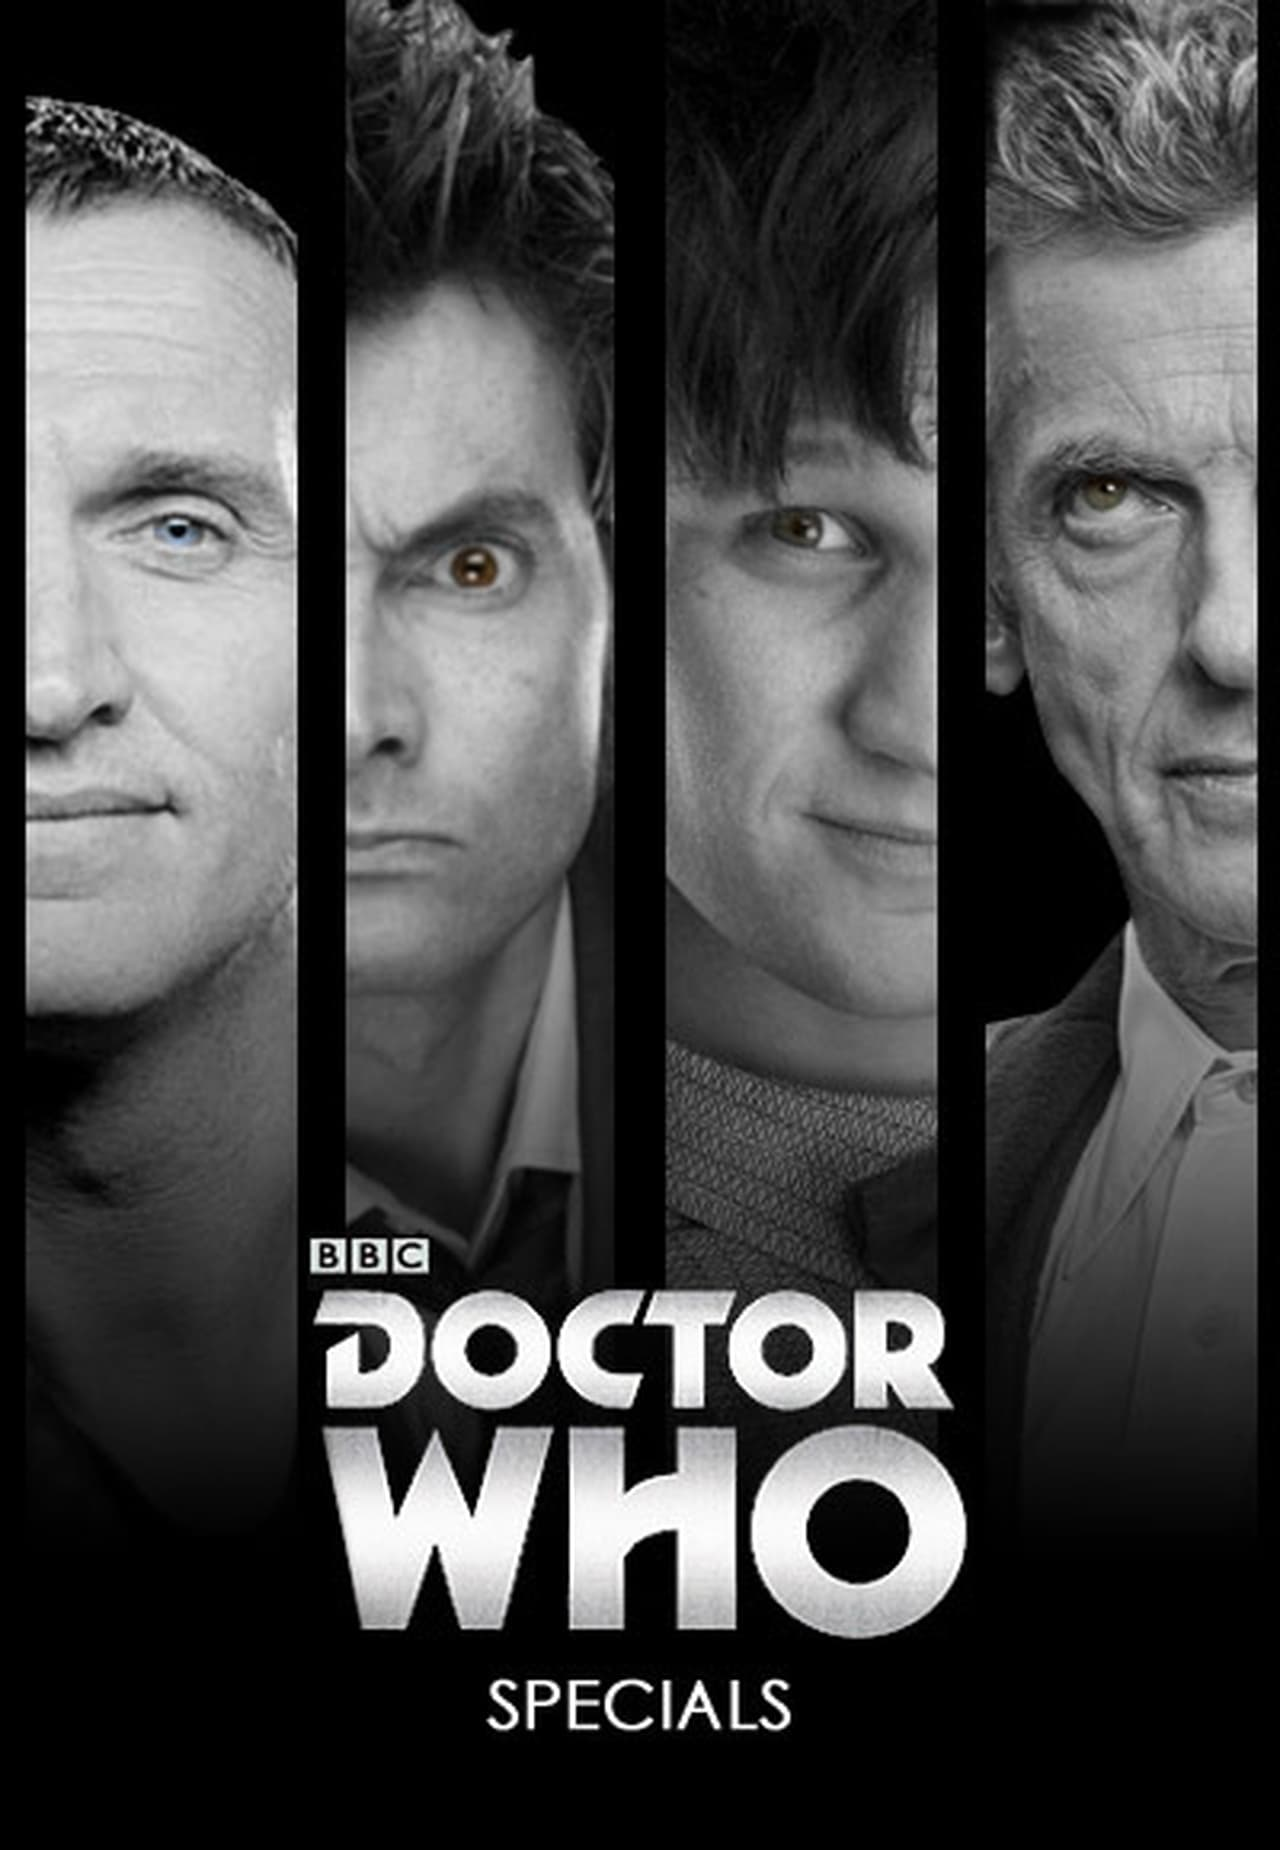 Watch Doctor Who Season 0 Online